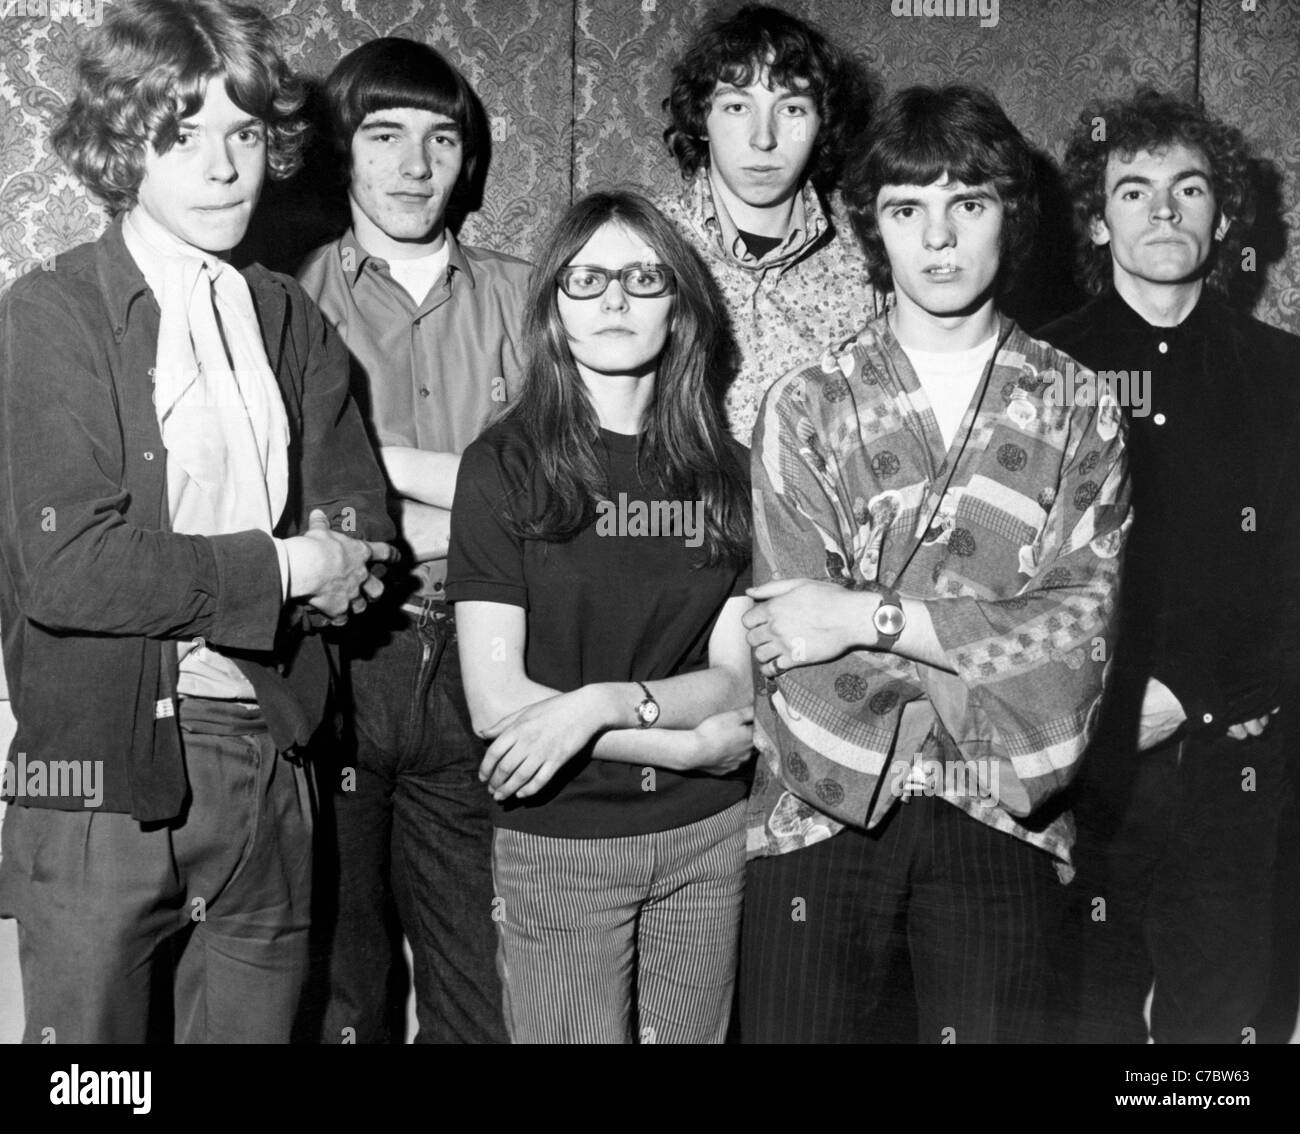 FAIRPORT CONVENTION UK folk/rock group in November 1967. See Description below - Stock Image